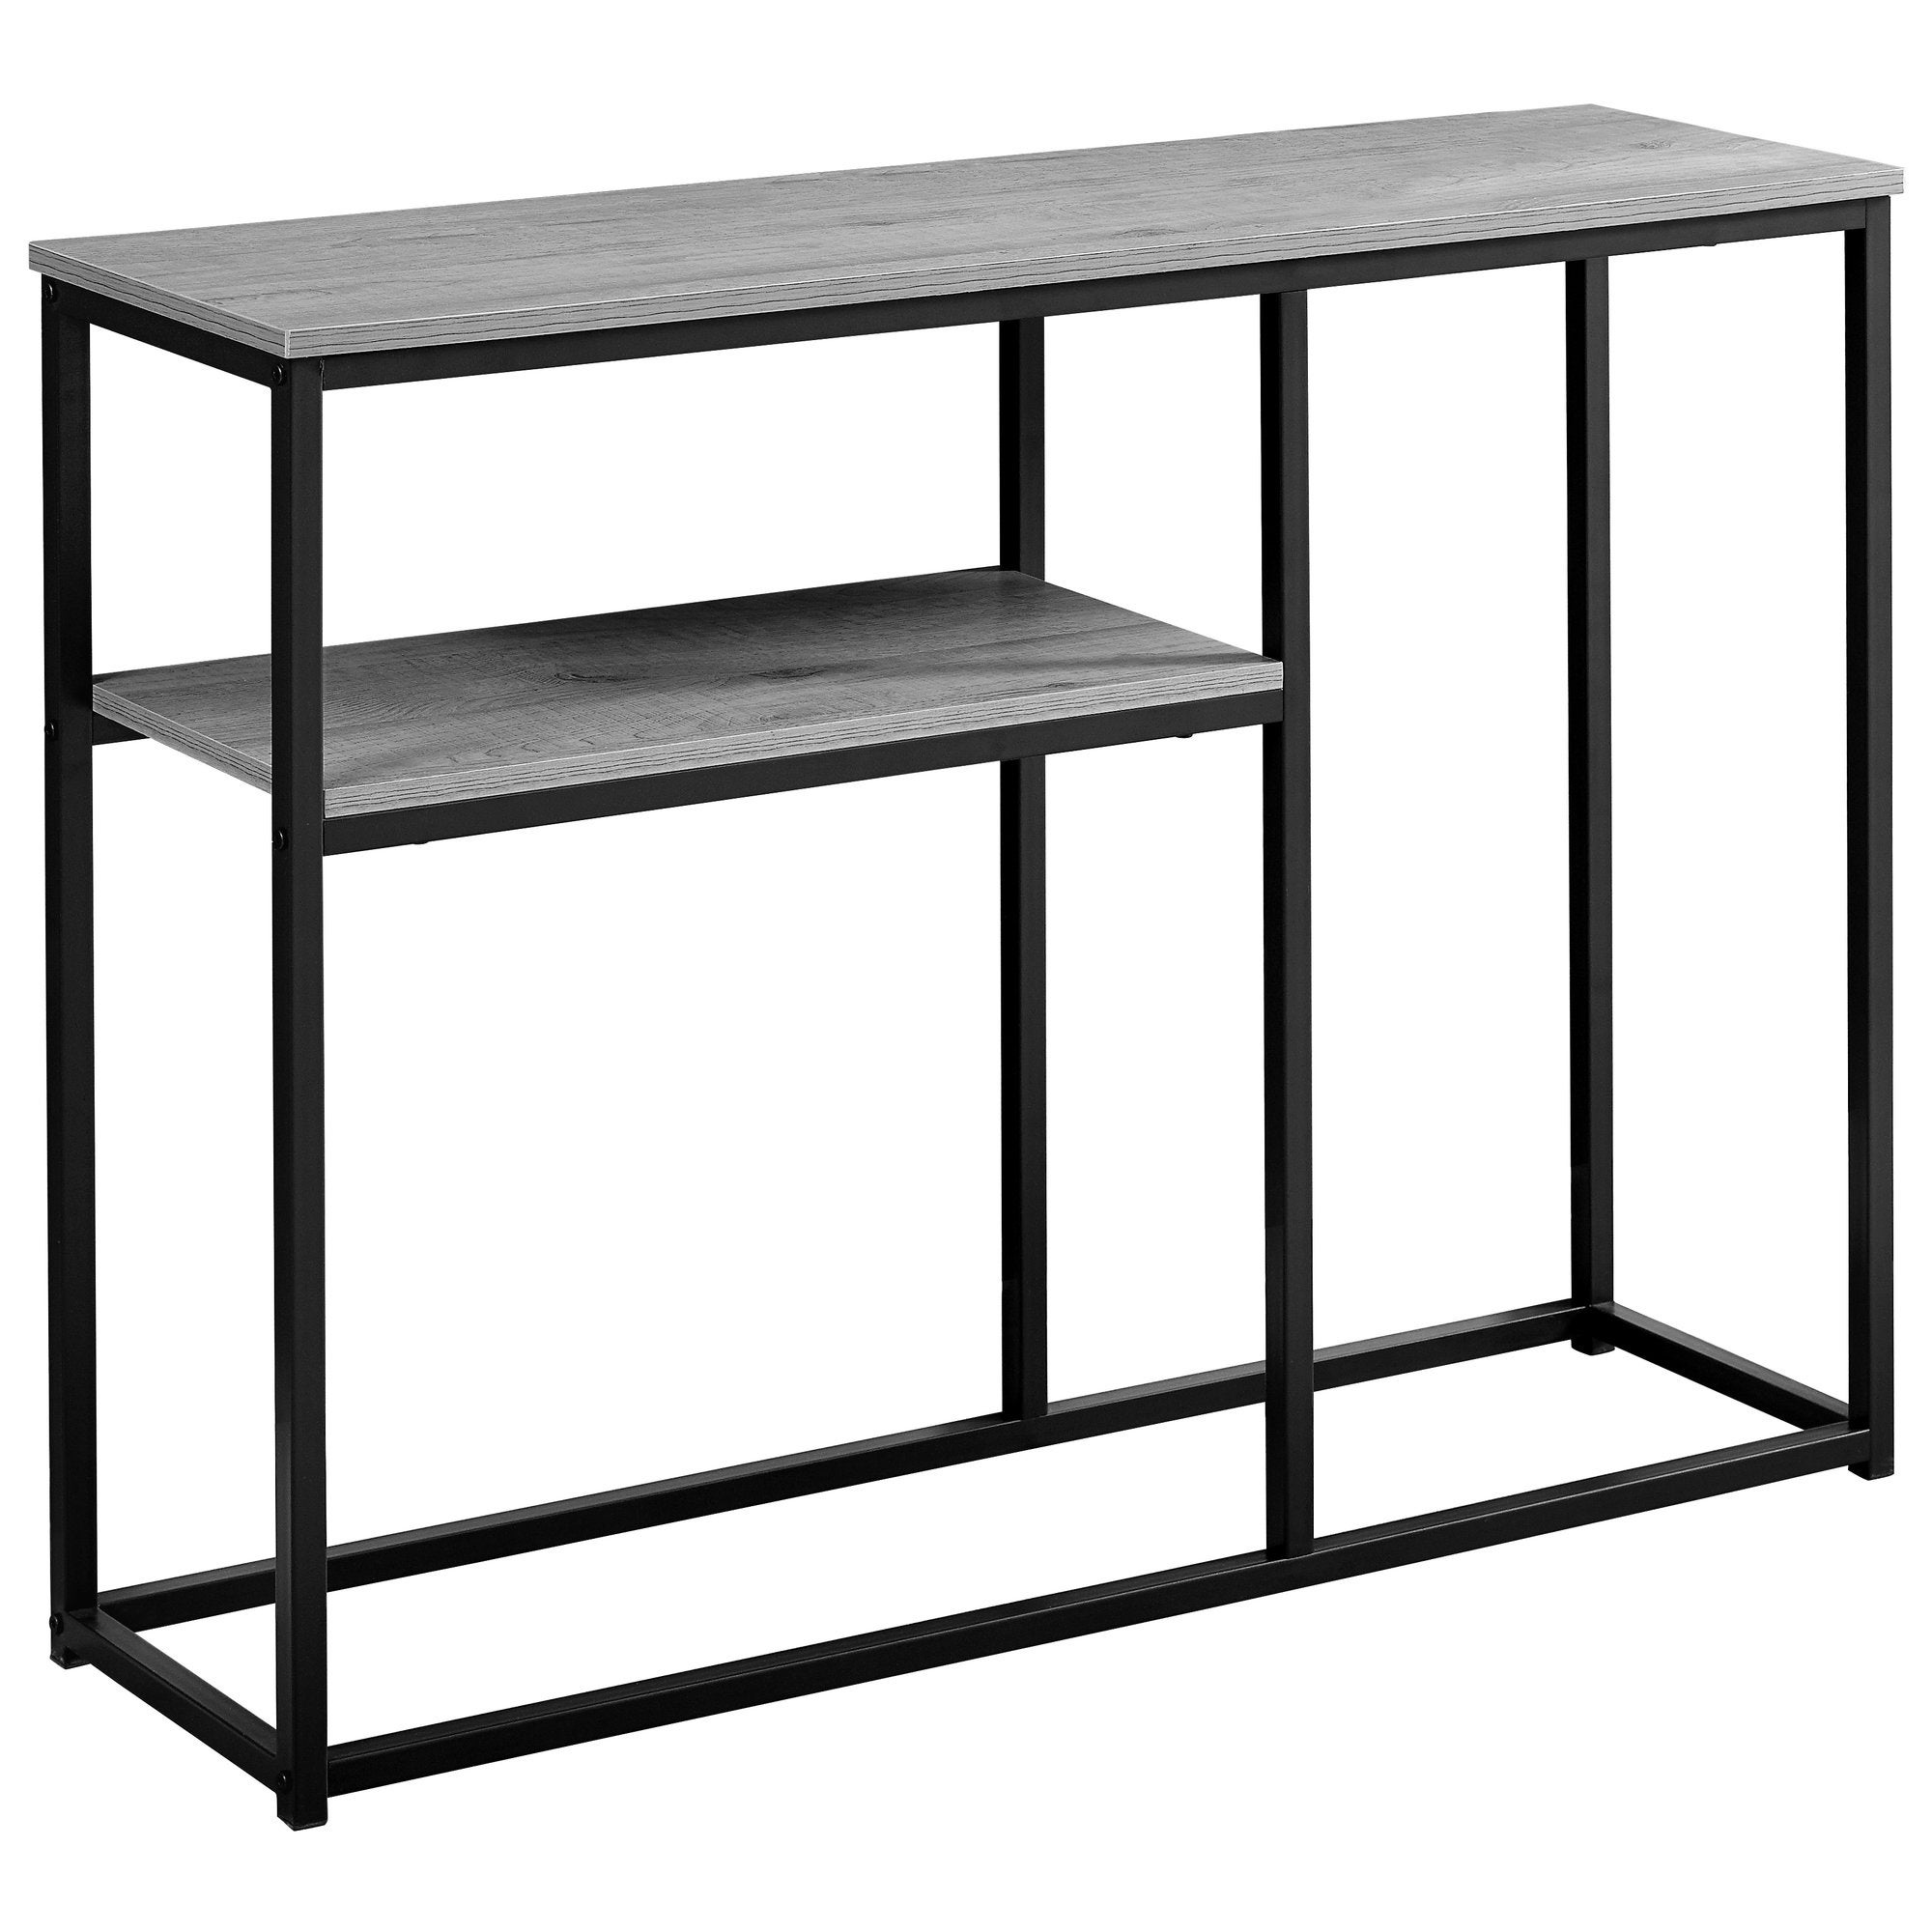 Fabulous Details About Accent Table 42L Metal Hall Console Interior Design Ideas Inesswwsoteloinfo